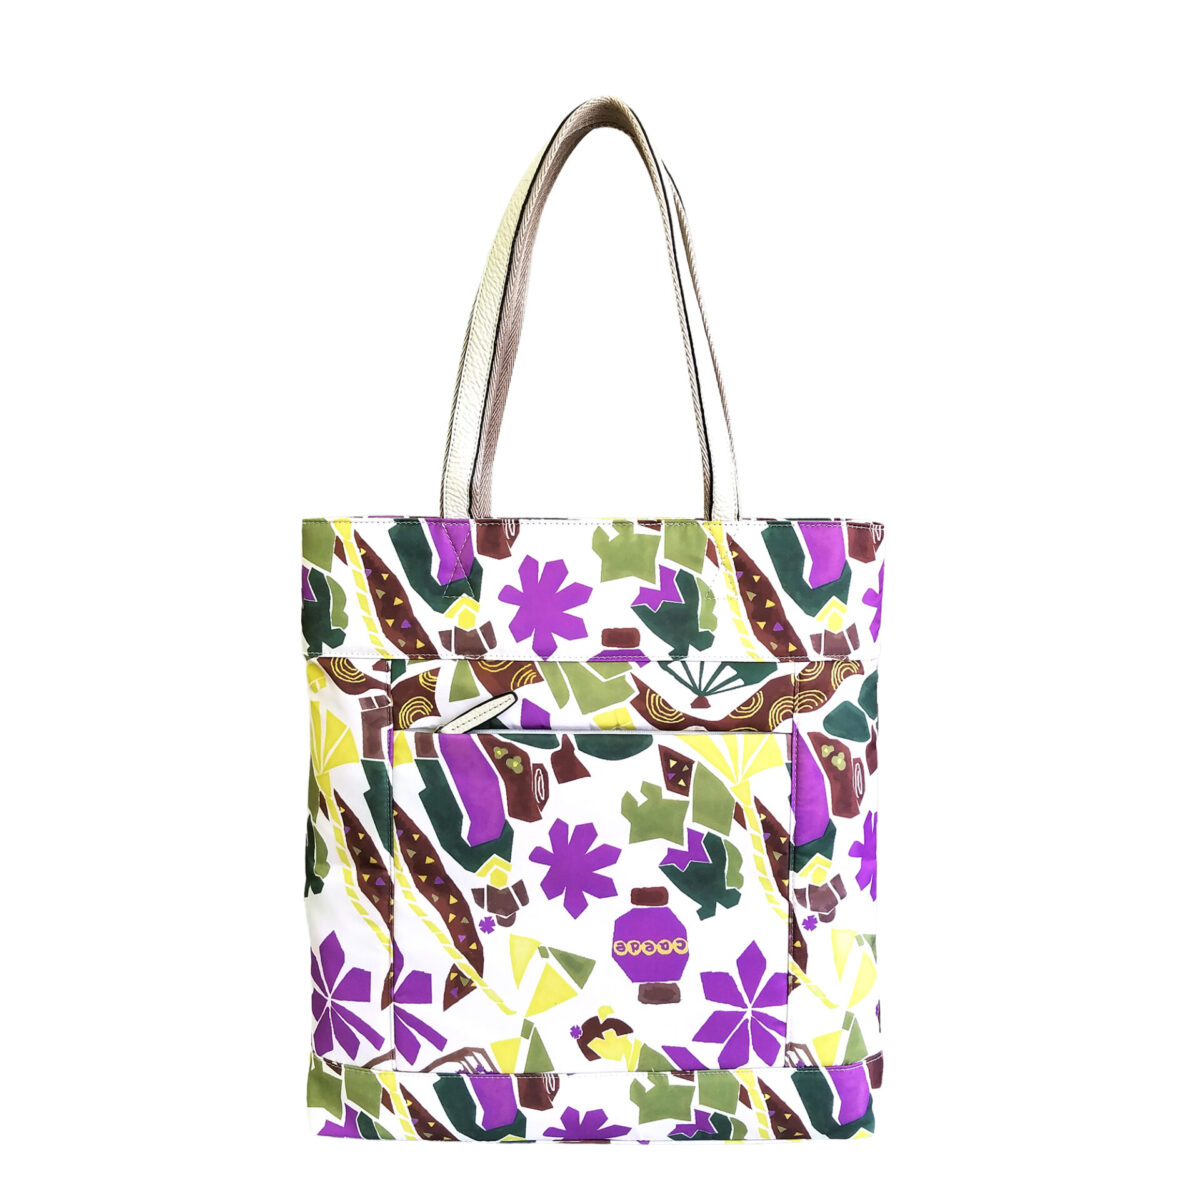 Maiko Puzzle Etna tote ivory